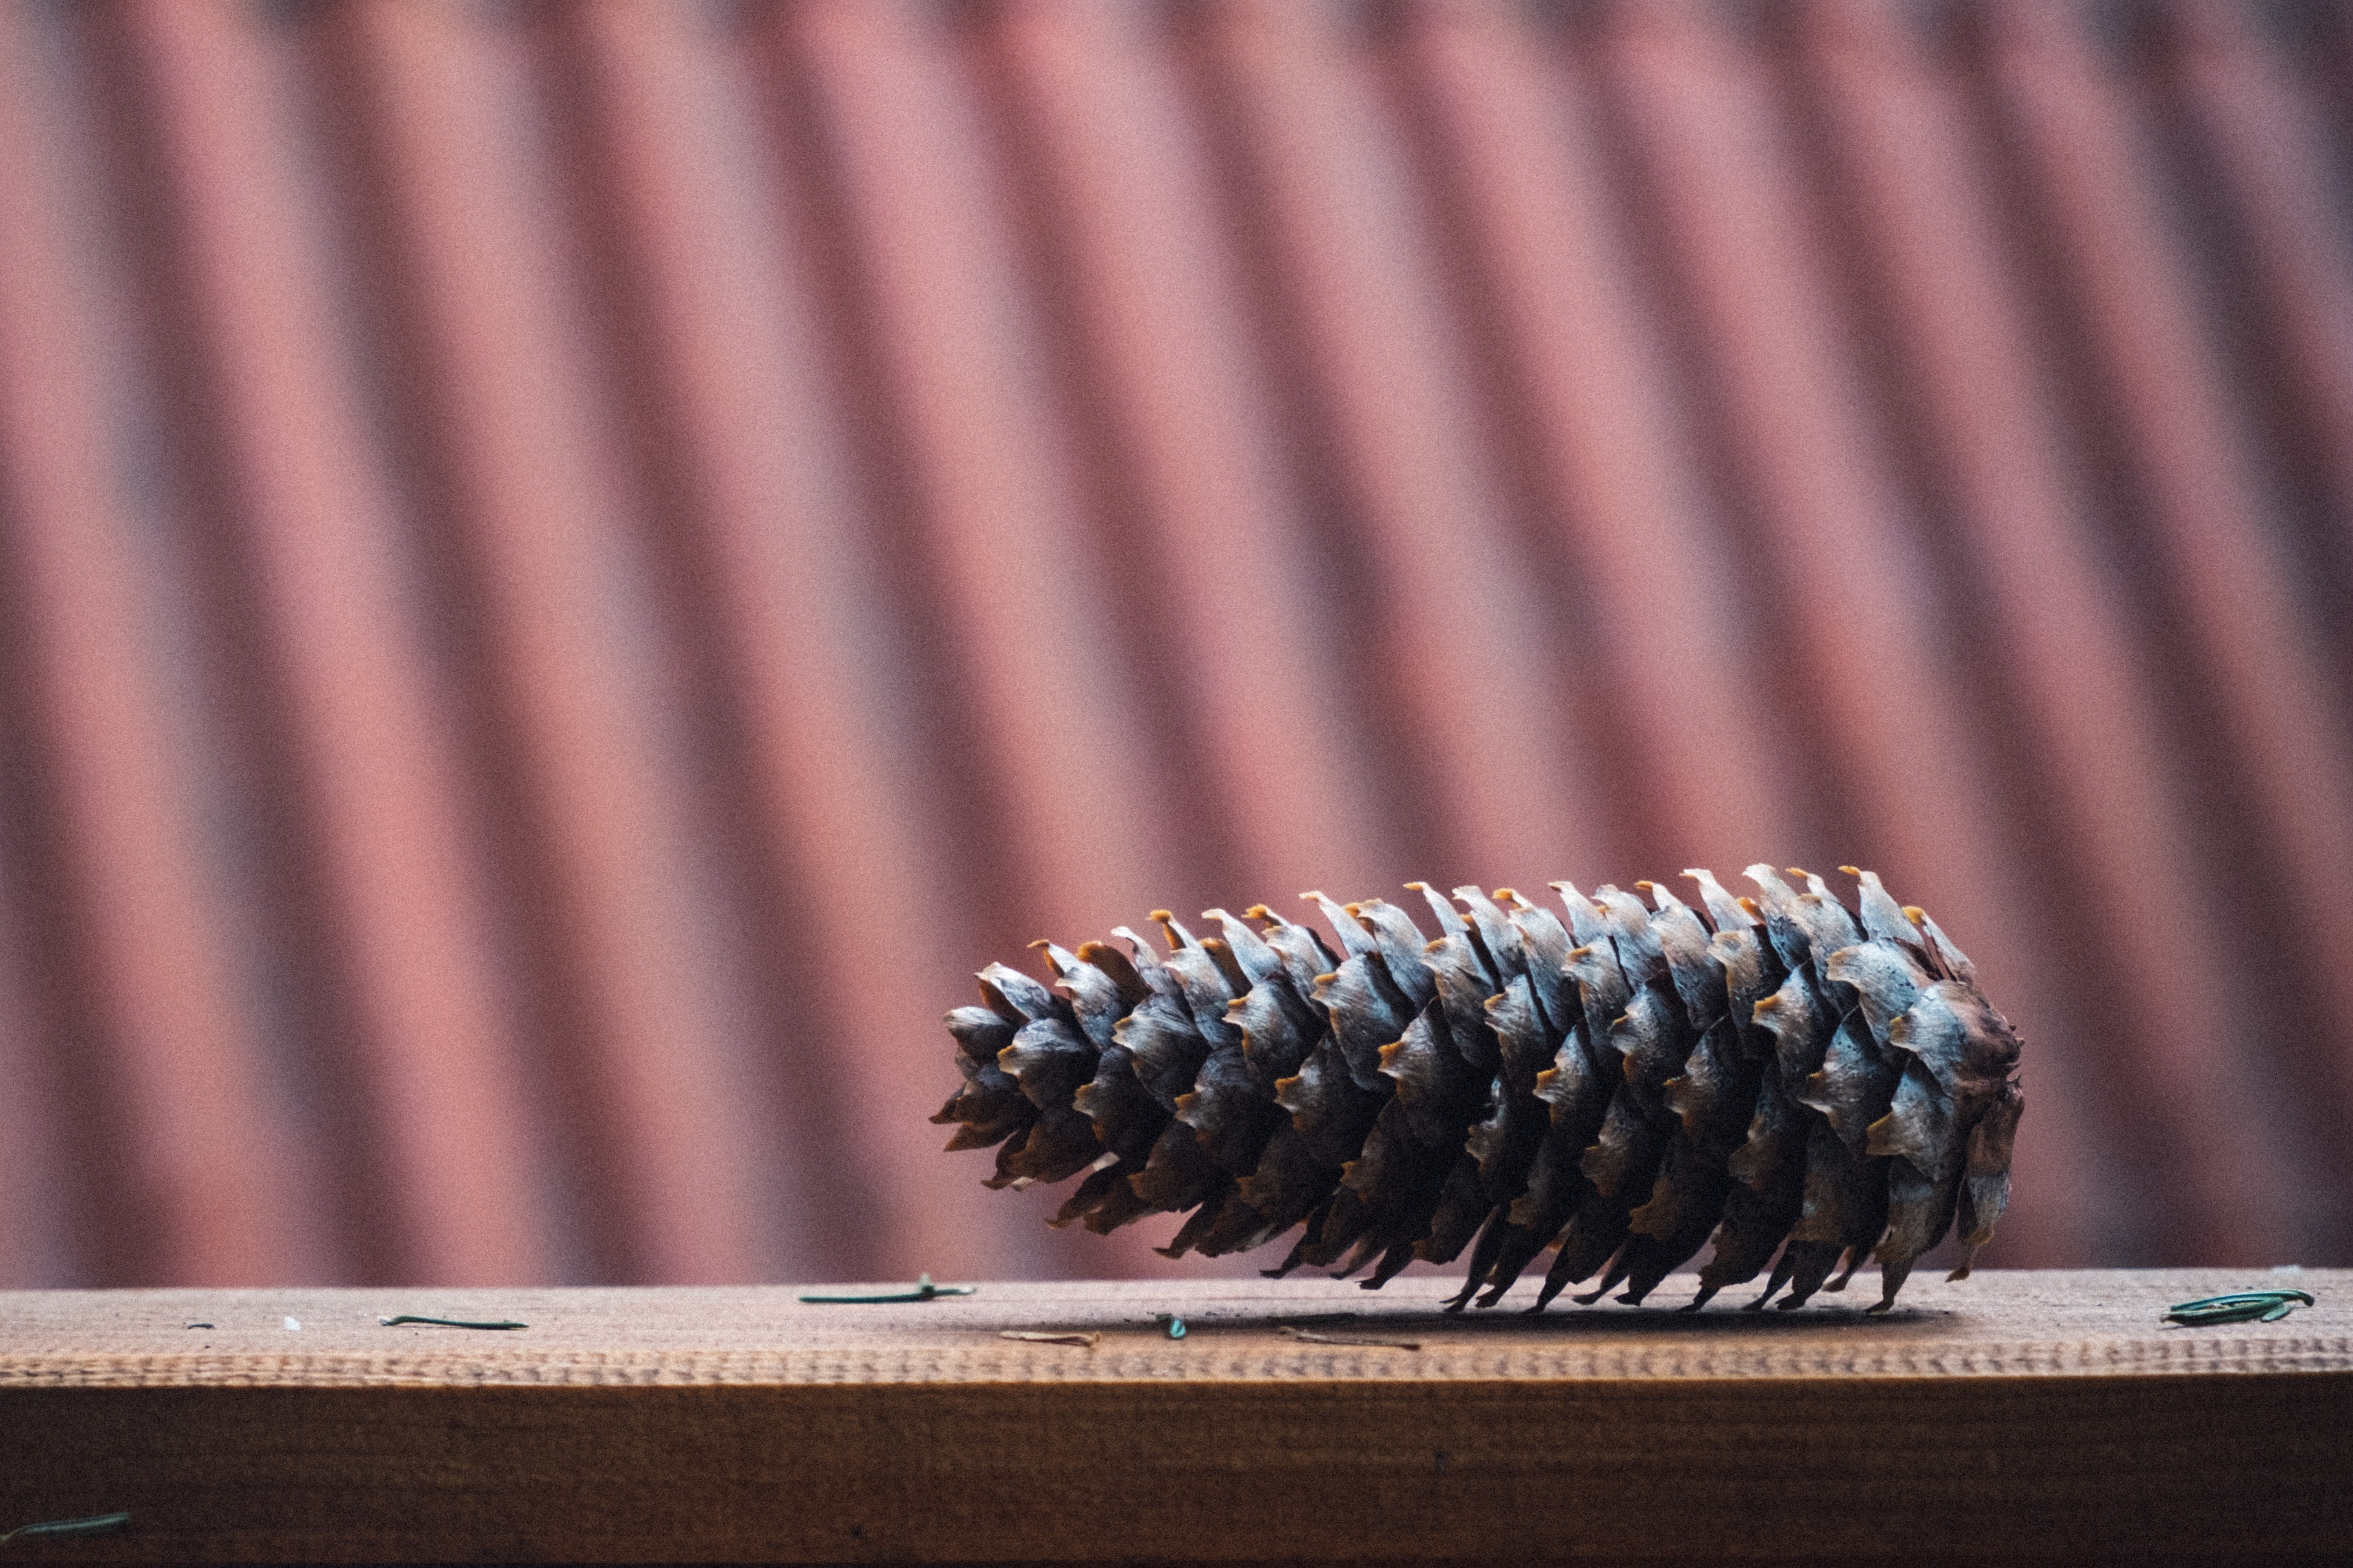 Brown Pinecone on Brown Wooden Surface, Blur, Close-up, Design, Outdoors, HQ Photo